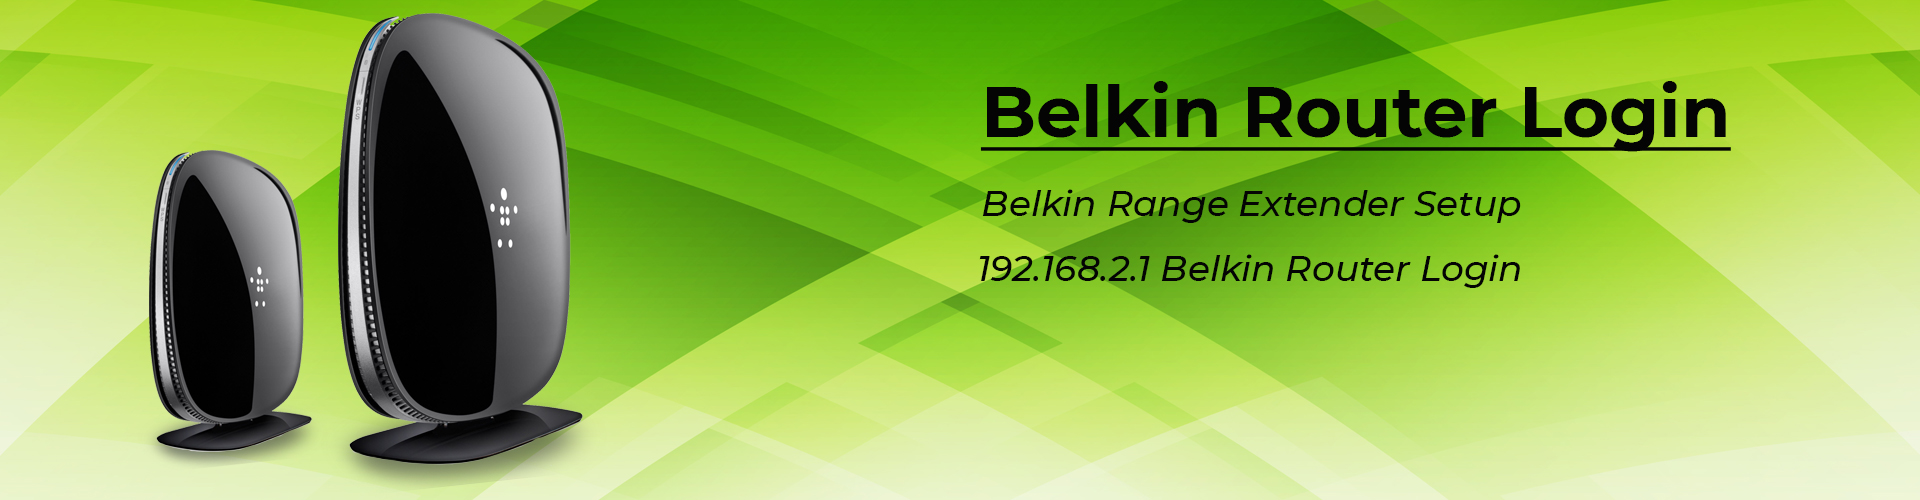 HOW TO UPDATE MY BELKIN ROUTER